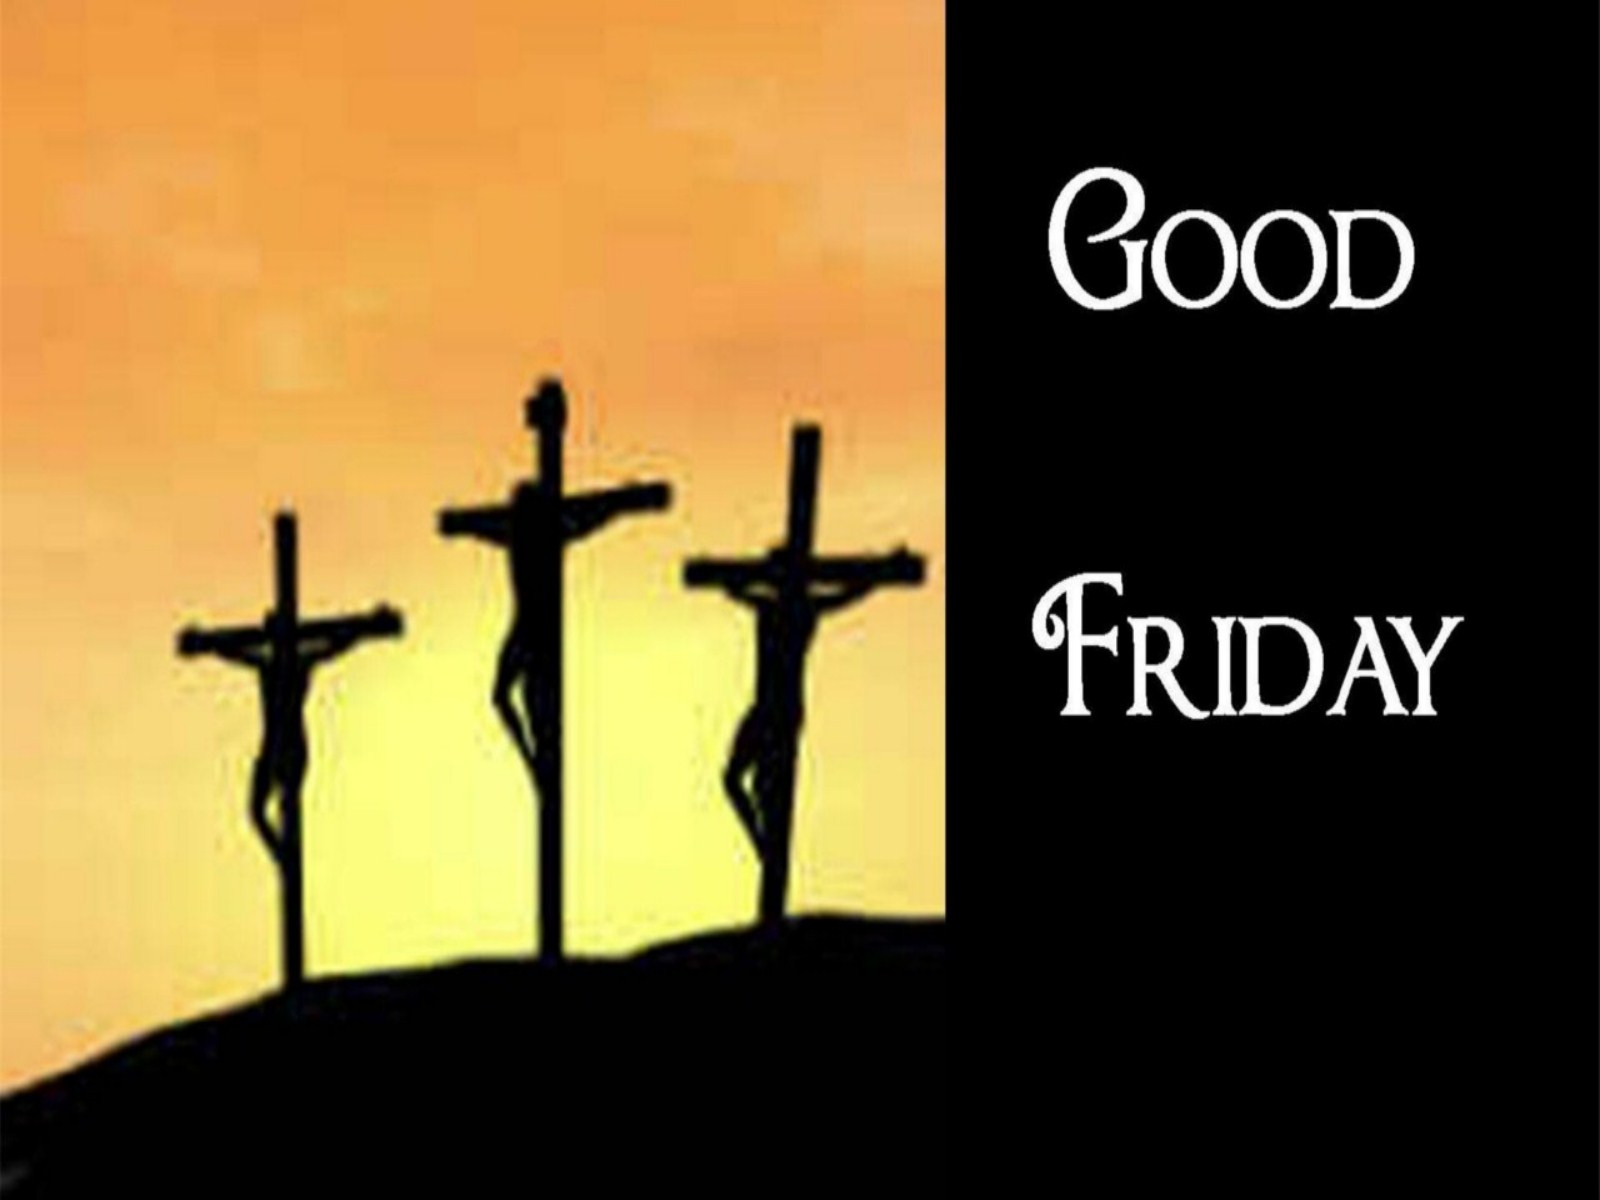 picturespool good friday wallpapers palm sunday clip art for fb palm sunday clip art for fb